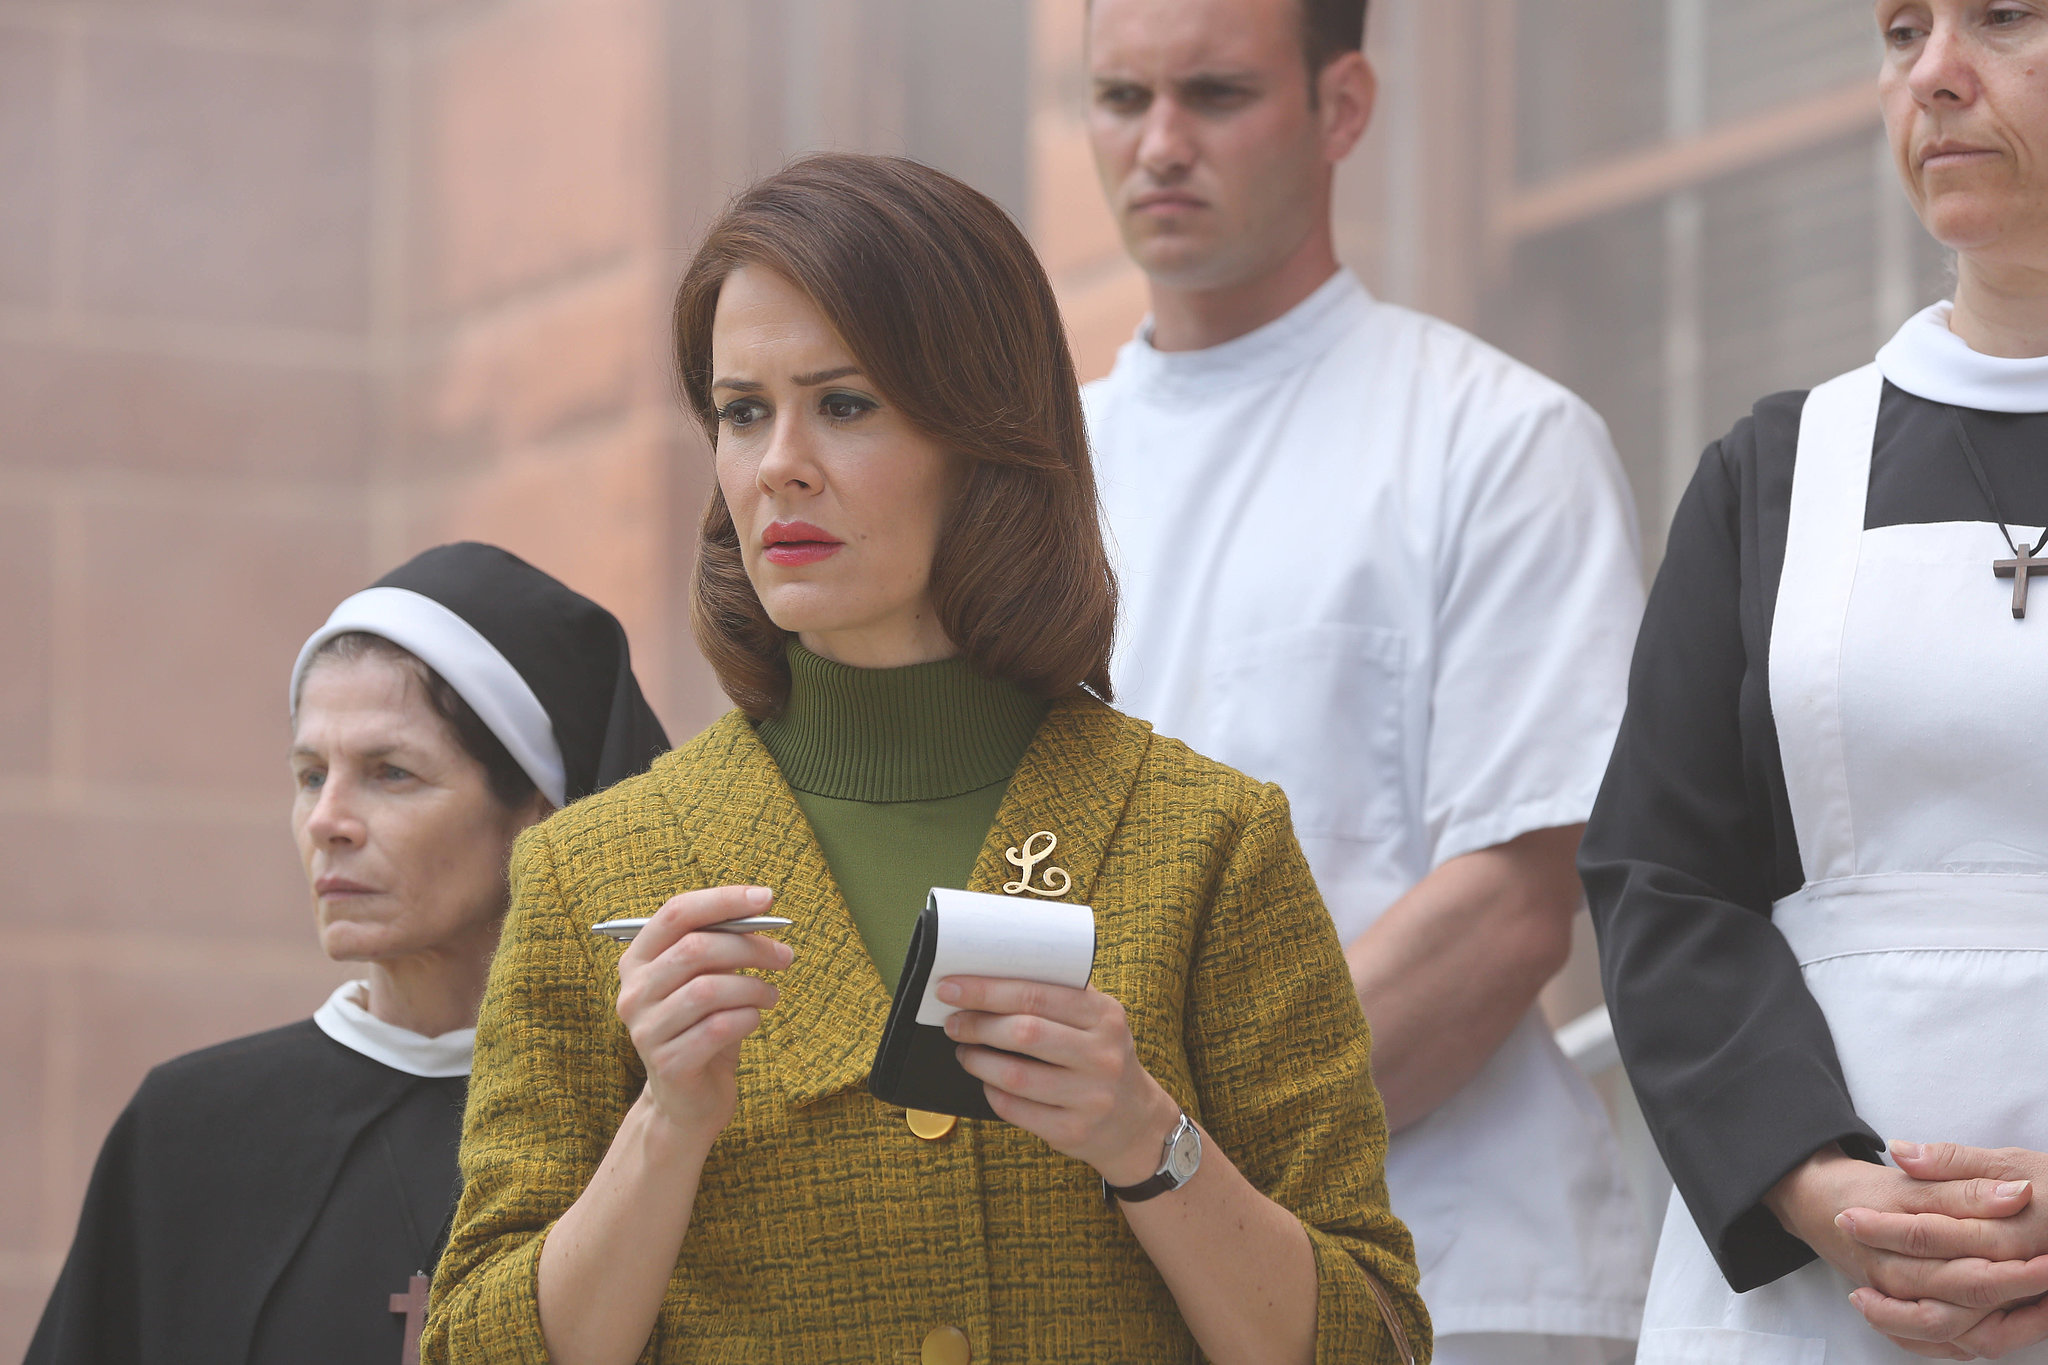 Outstanding Supporting Actress in a Miniseries or Movie As scene-stealing as she is in season one of American Horror Story, Sarah Paulson really ups her game for Asylum. She also has a much meatier role: a roving reporter who goes undercover at an institution, only to become trapped by even darker forces of evil than the nuns patrolling the hospital. Paulson manages to be broken yet cunning in a fascinating performance.